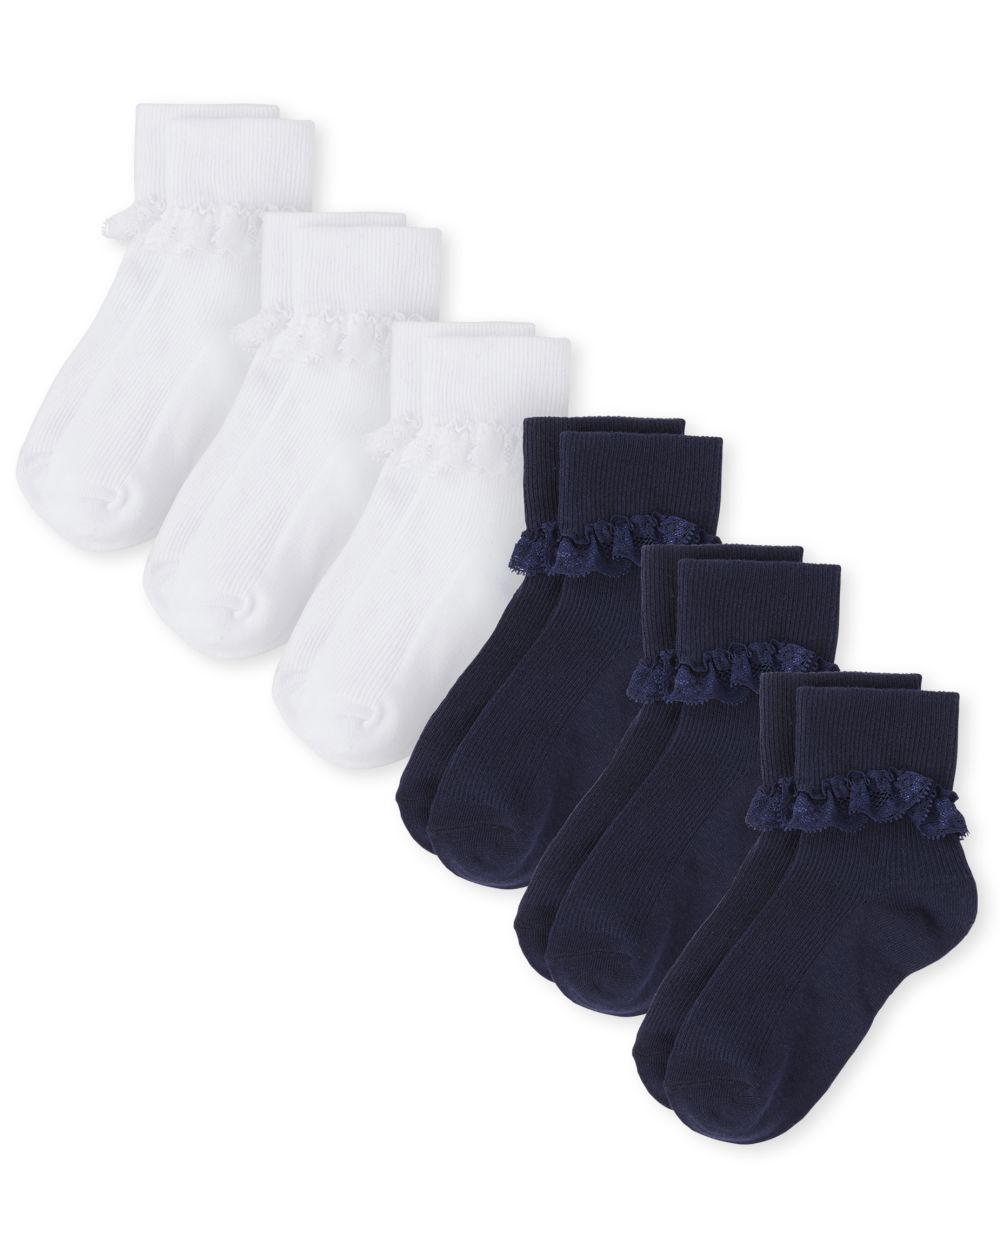 Girls Lace Ruffle Socks 6-Pack